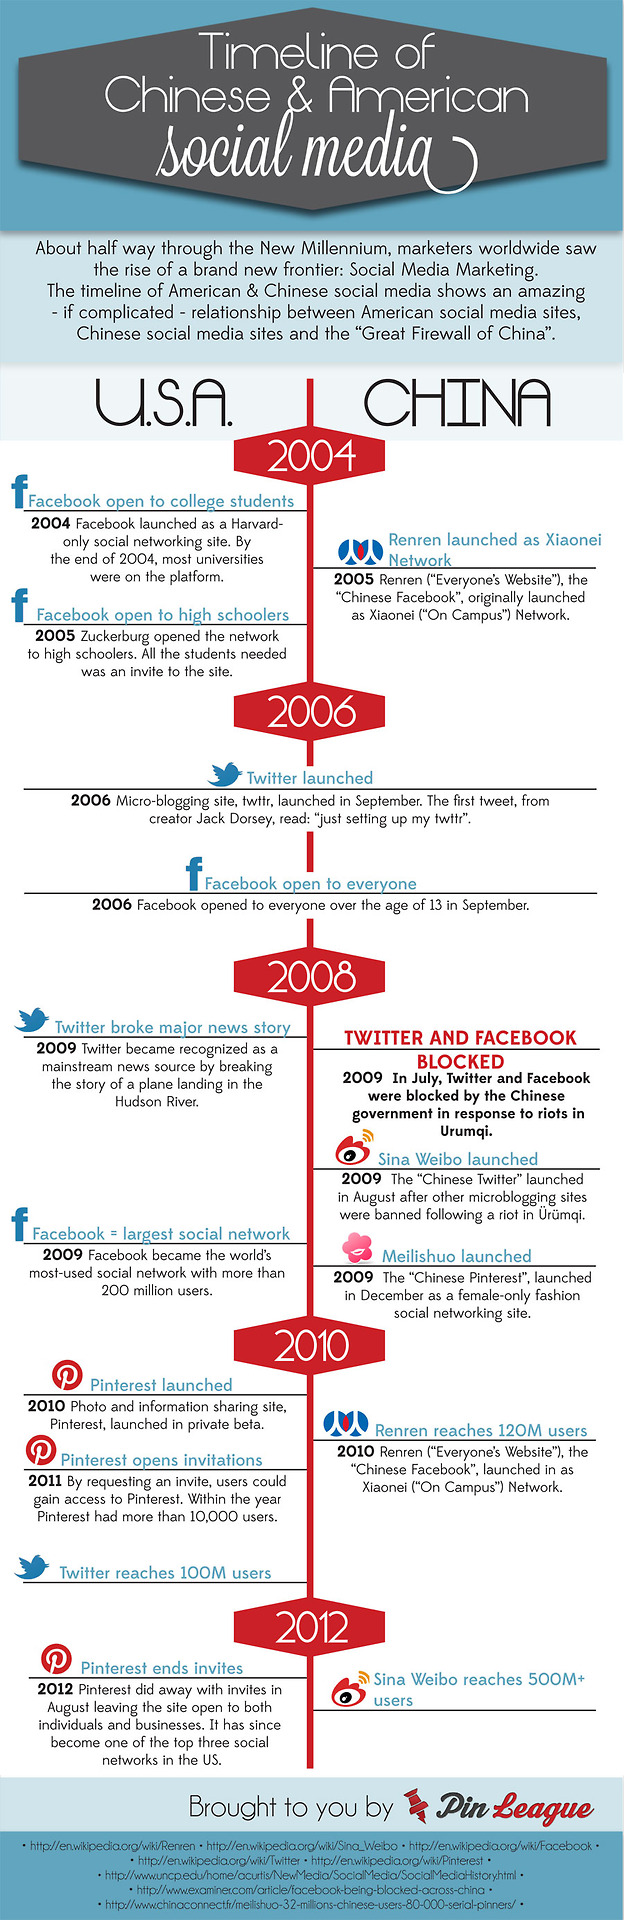 A-timeline-of-social-media-in-the-US-and-in-China.jpg